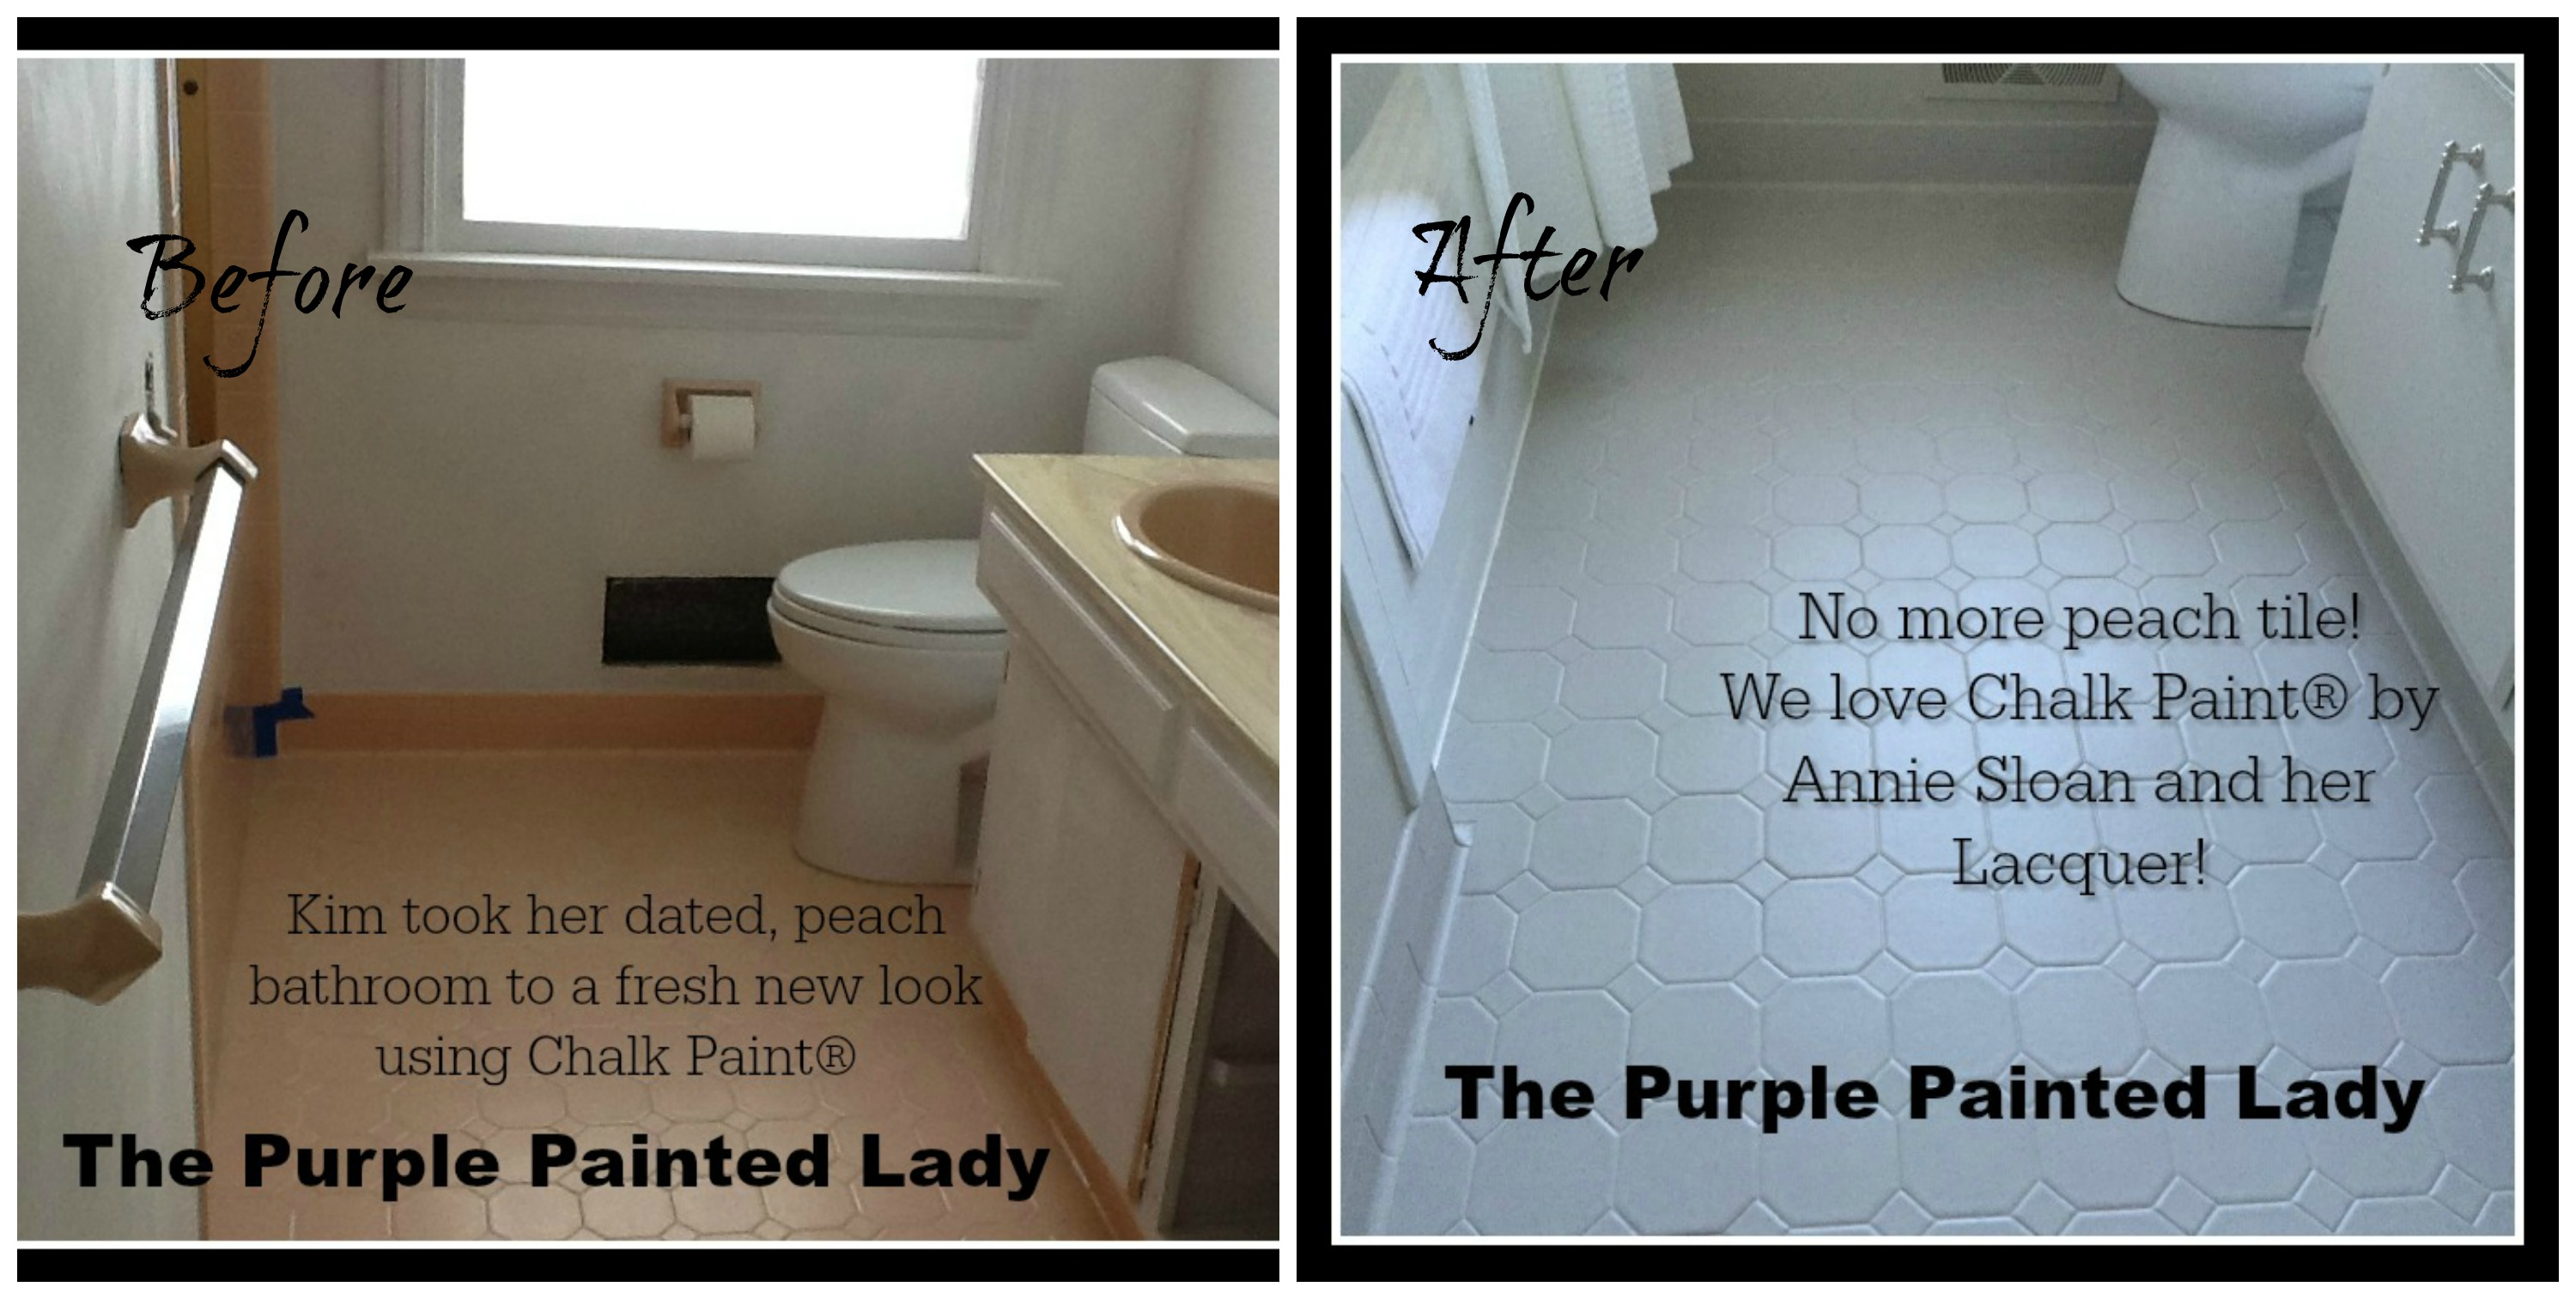 Painting tile in the bathroom with chalk paint the purple the purple painted lady kim gray before after chalk paint annie sloan dailygadgetfo Choice Image